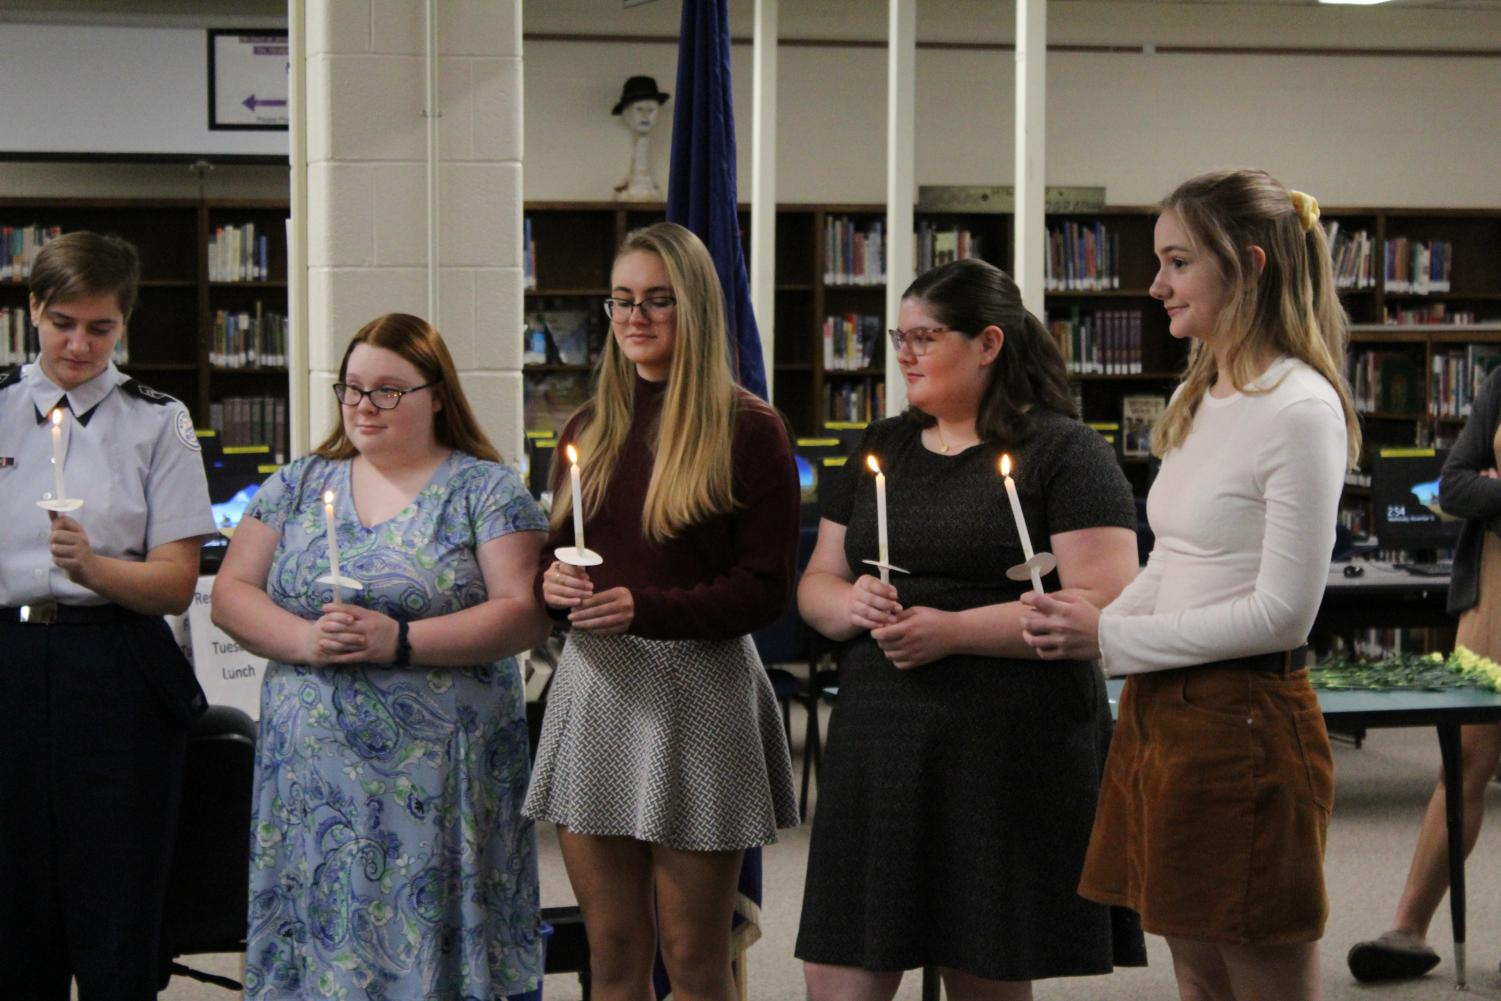 New inductees hold candles at the ceremony.